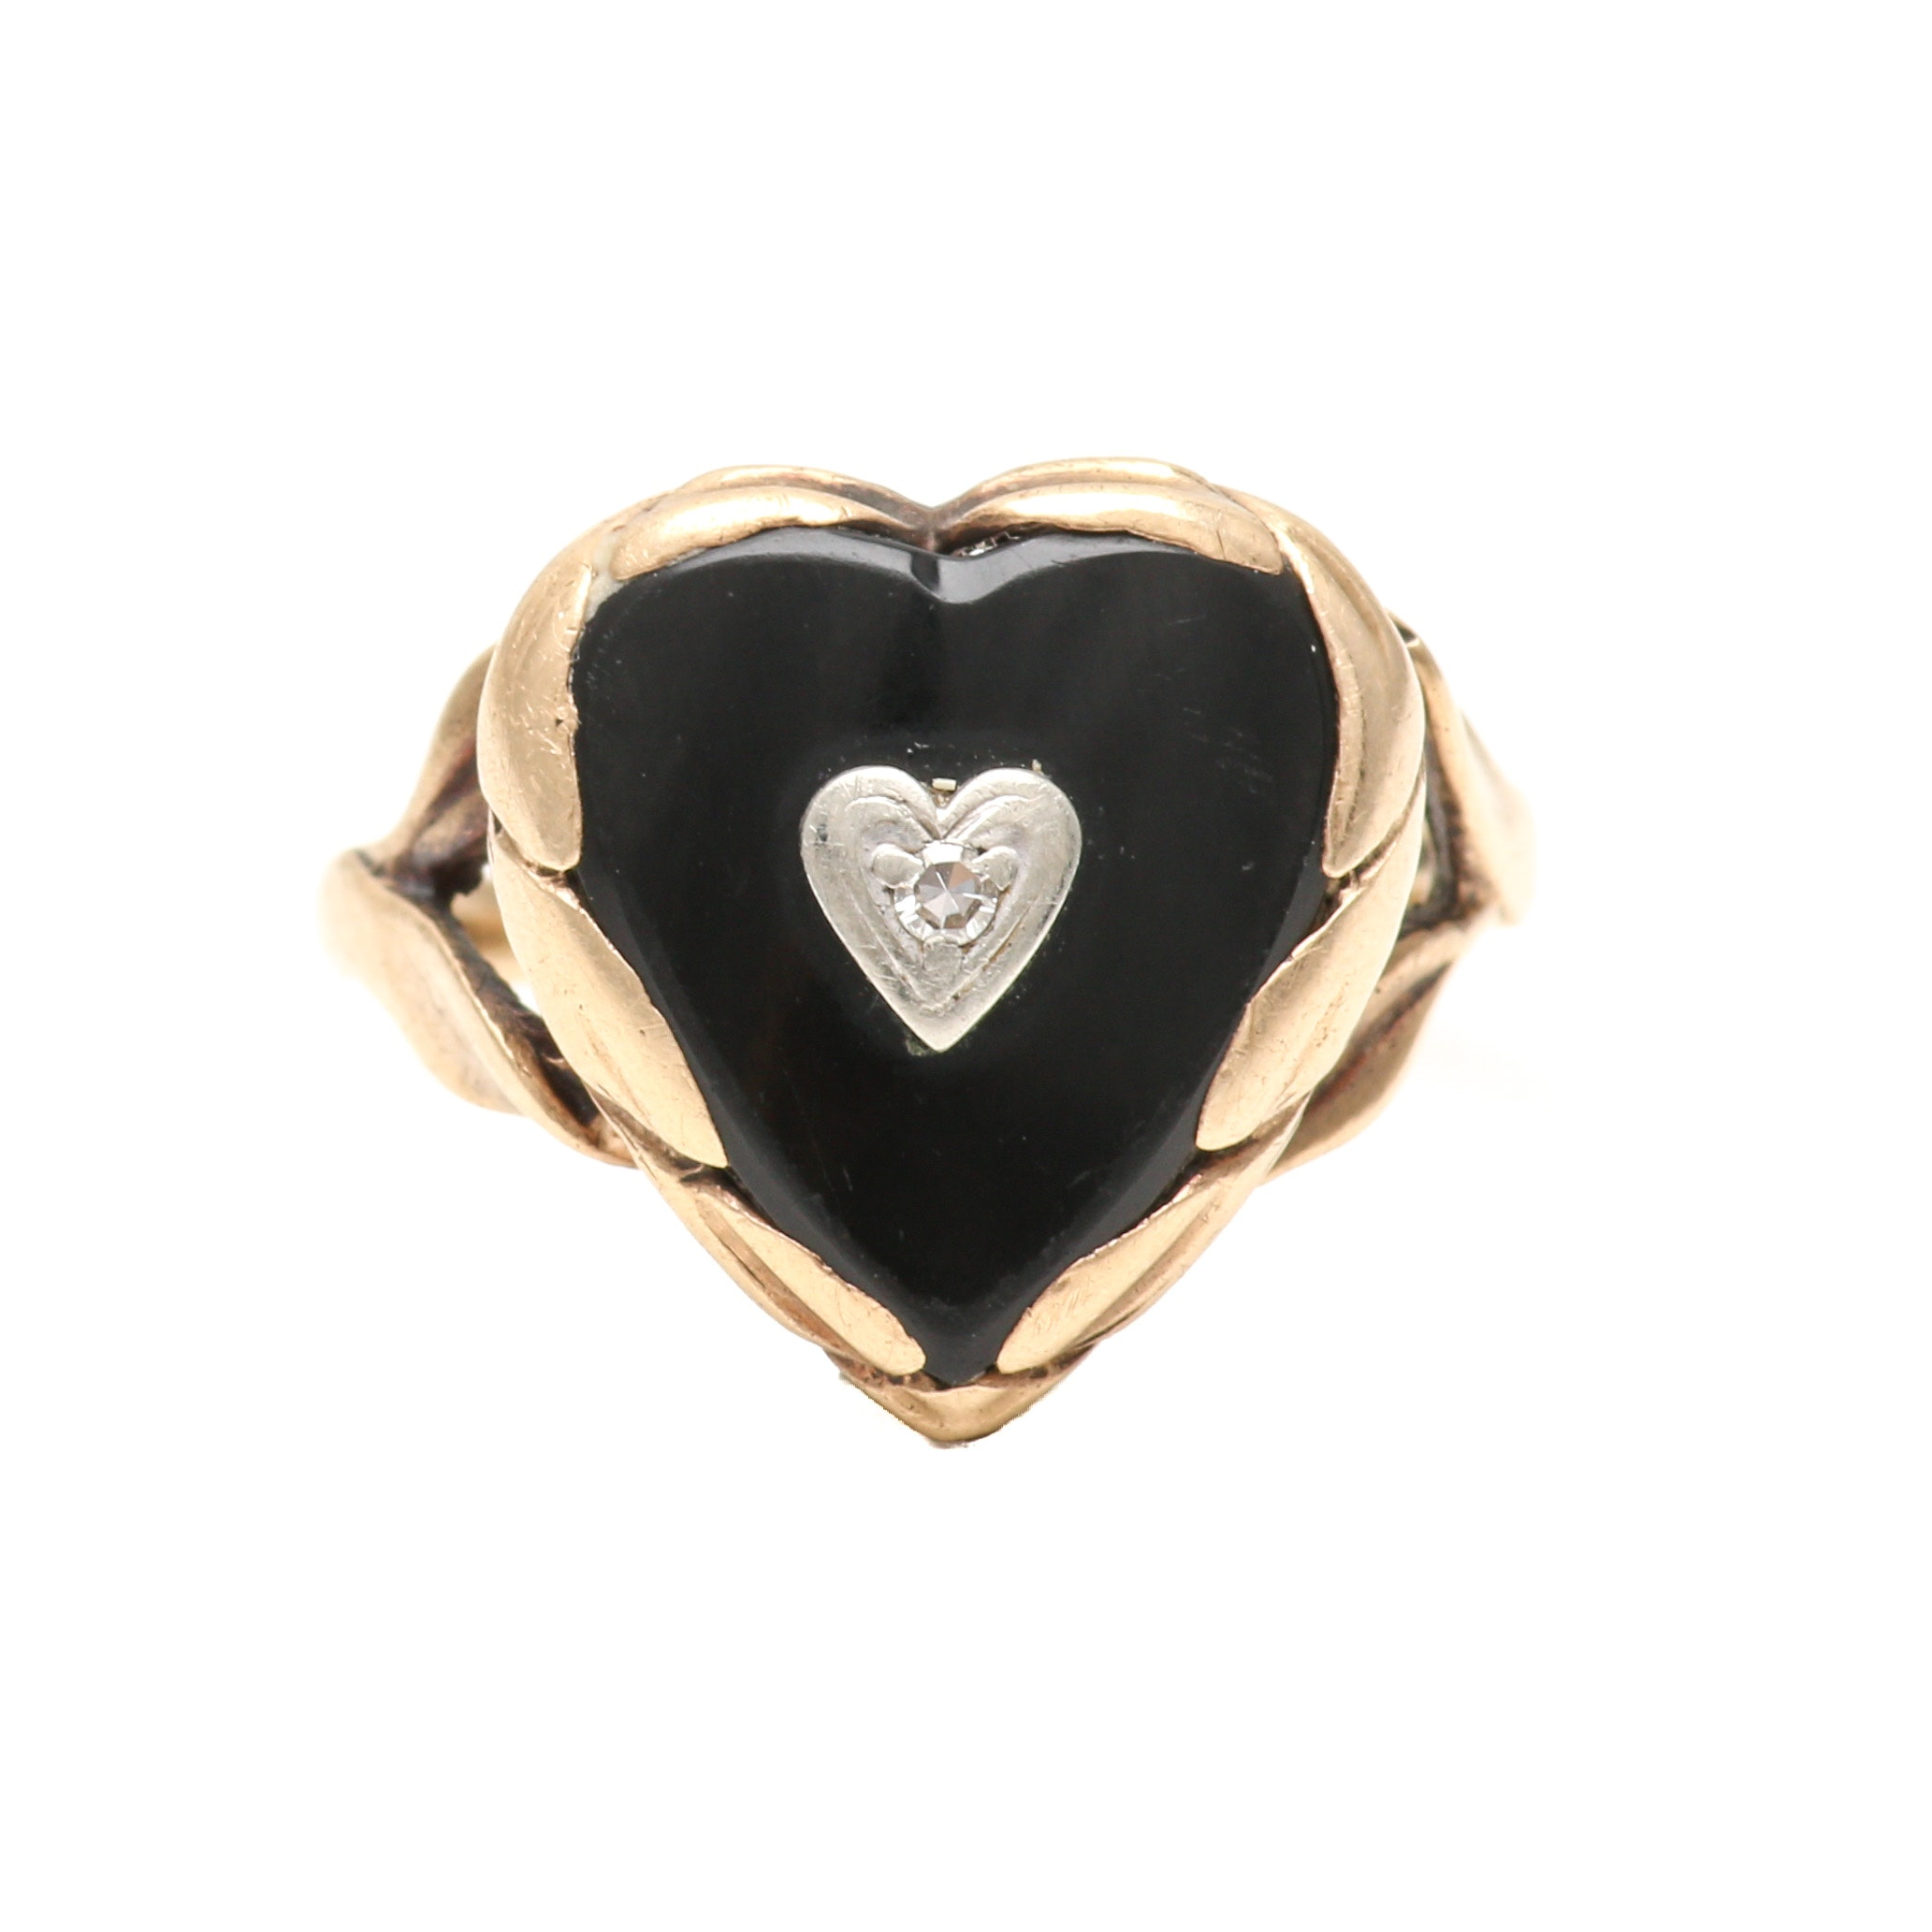 10K Yellow Gold Onyx and Diamond Heart Ring with White Gold Accents